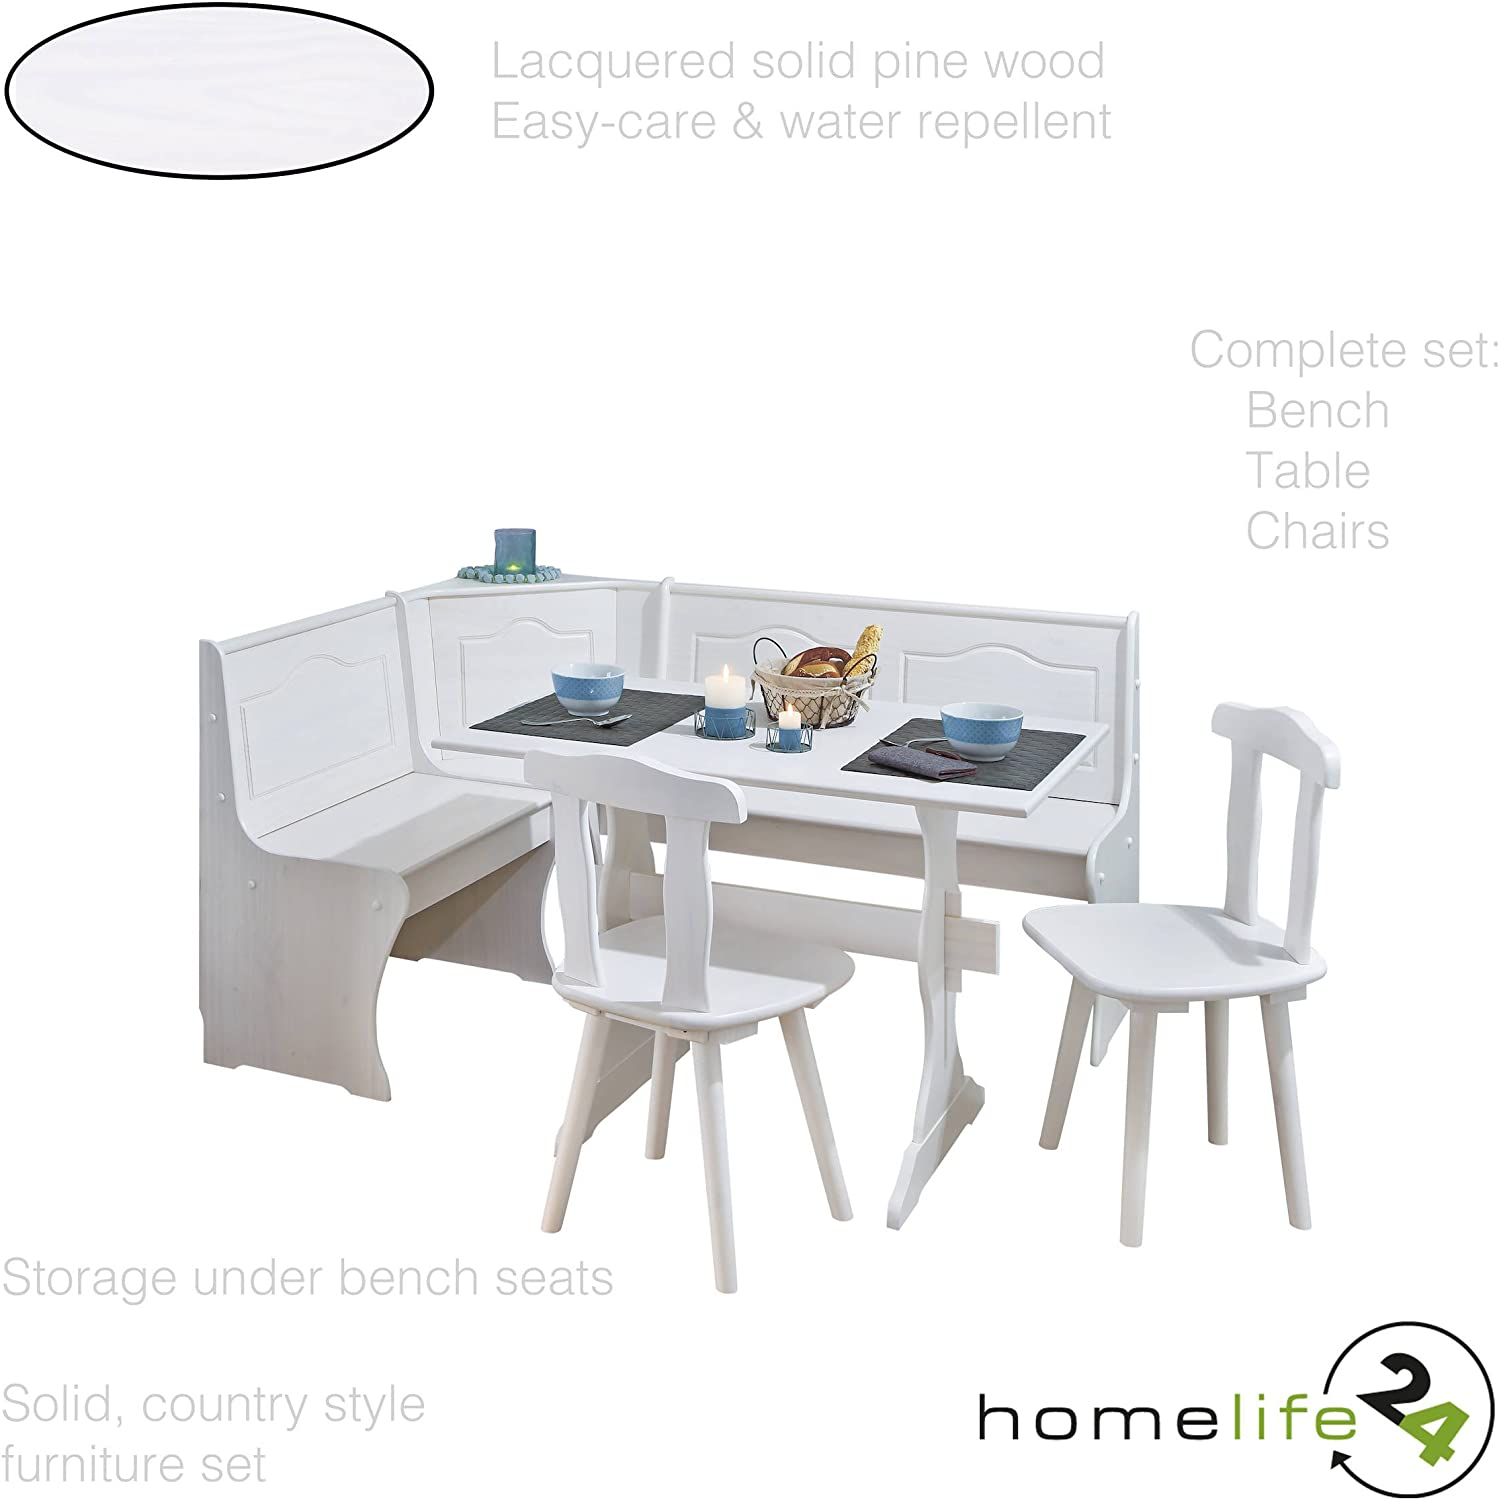 H24living Kitchen Dining Table Chairs Wood Dining Room Set Breakfast Table Set Corner Dining Set 1 Rustic Dining Table Bench Table 2 Chairs Bench Storage Solid Pine Wood White Finish Amazon Co Uk Kitchen